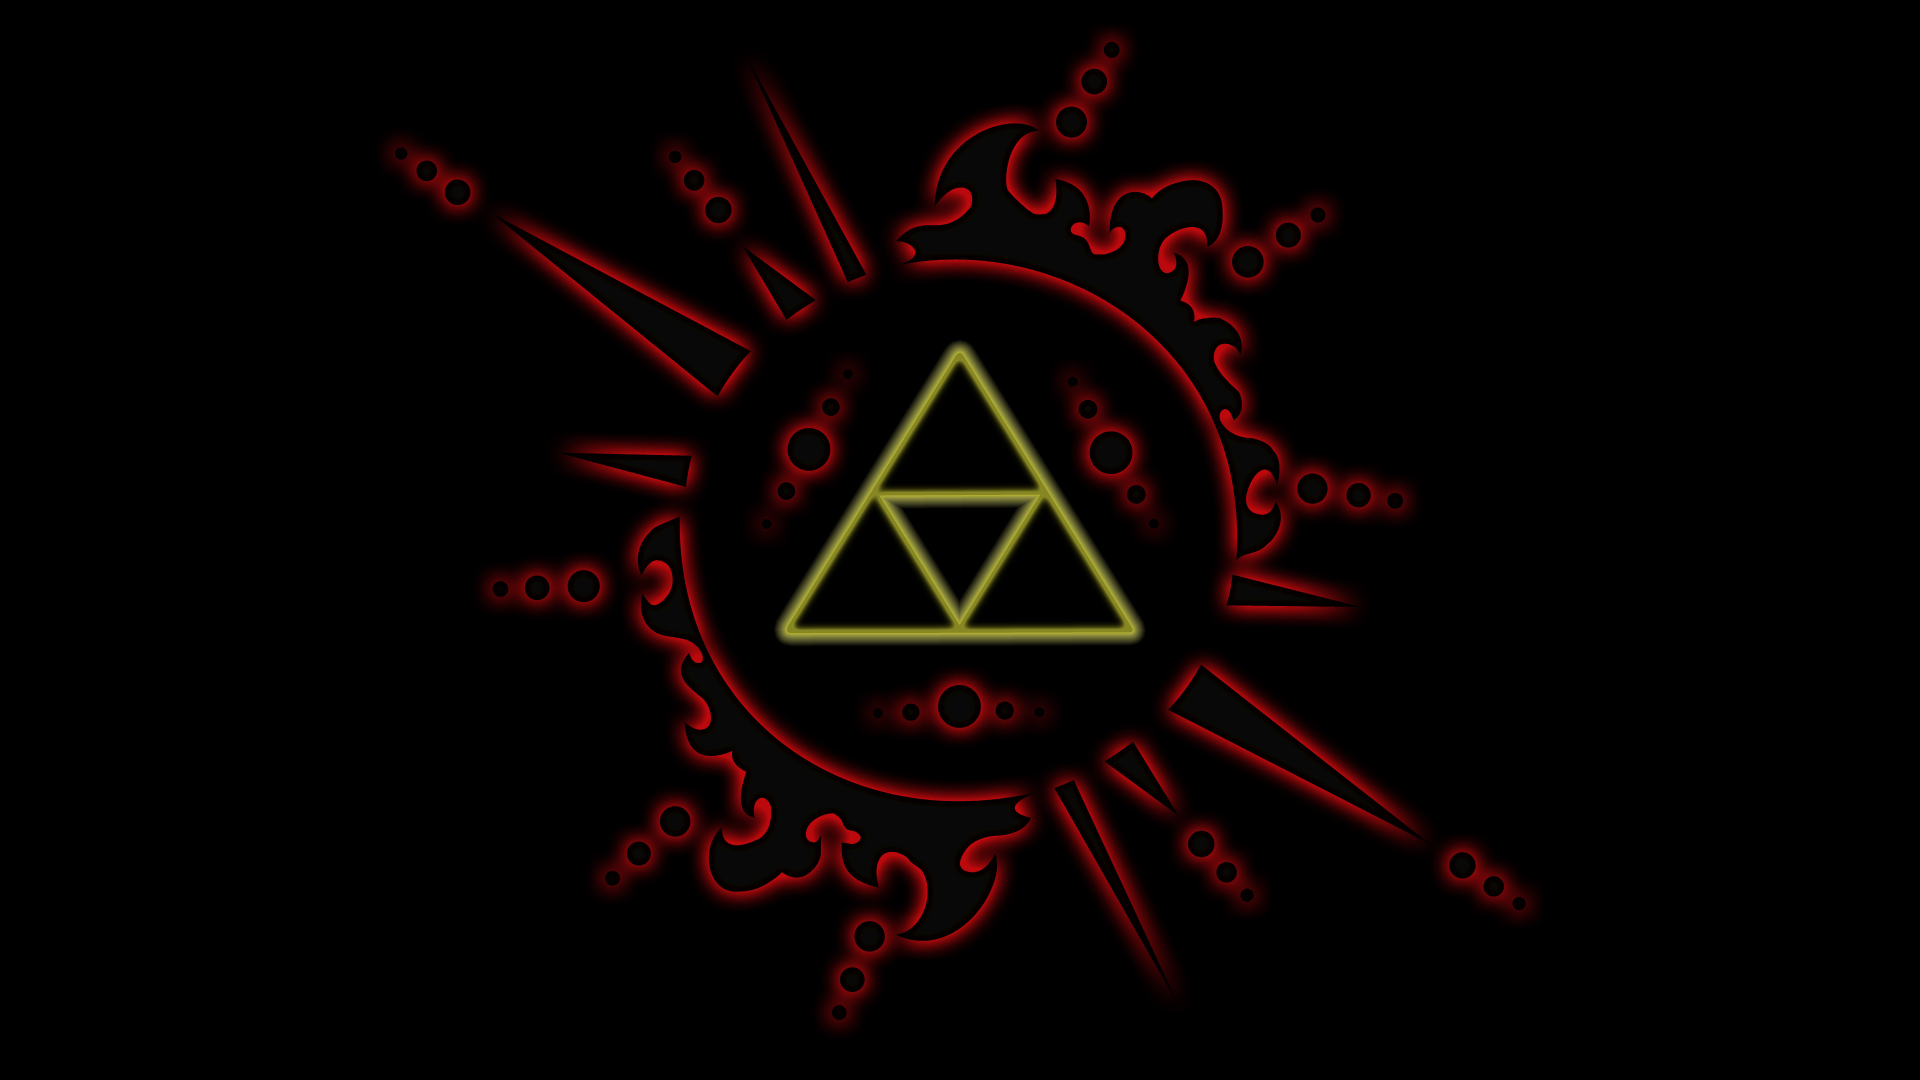 Hd wallpaper zelda - Triforce The Wallpaper 1920x1080 Triforce The Legend Of Zelda